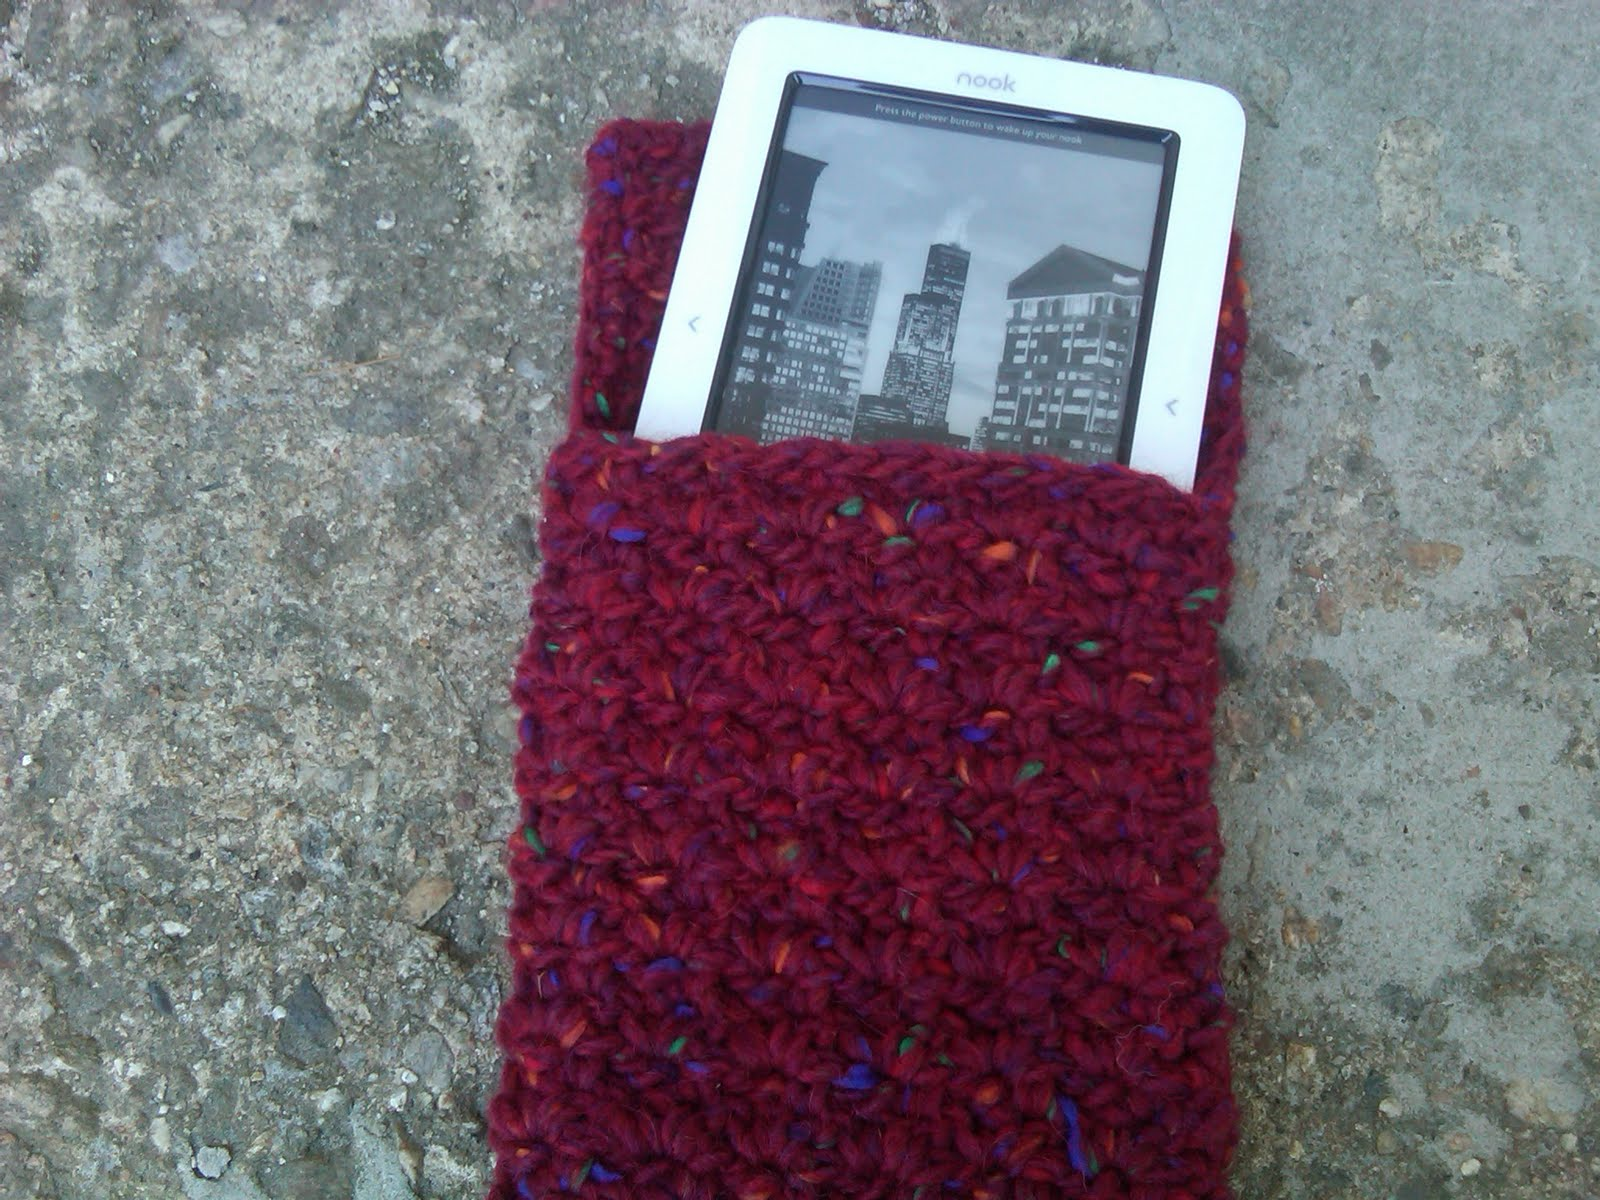 WildKnitter: Nook/Kindle Cover Pattern - Crochet